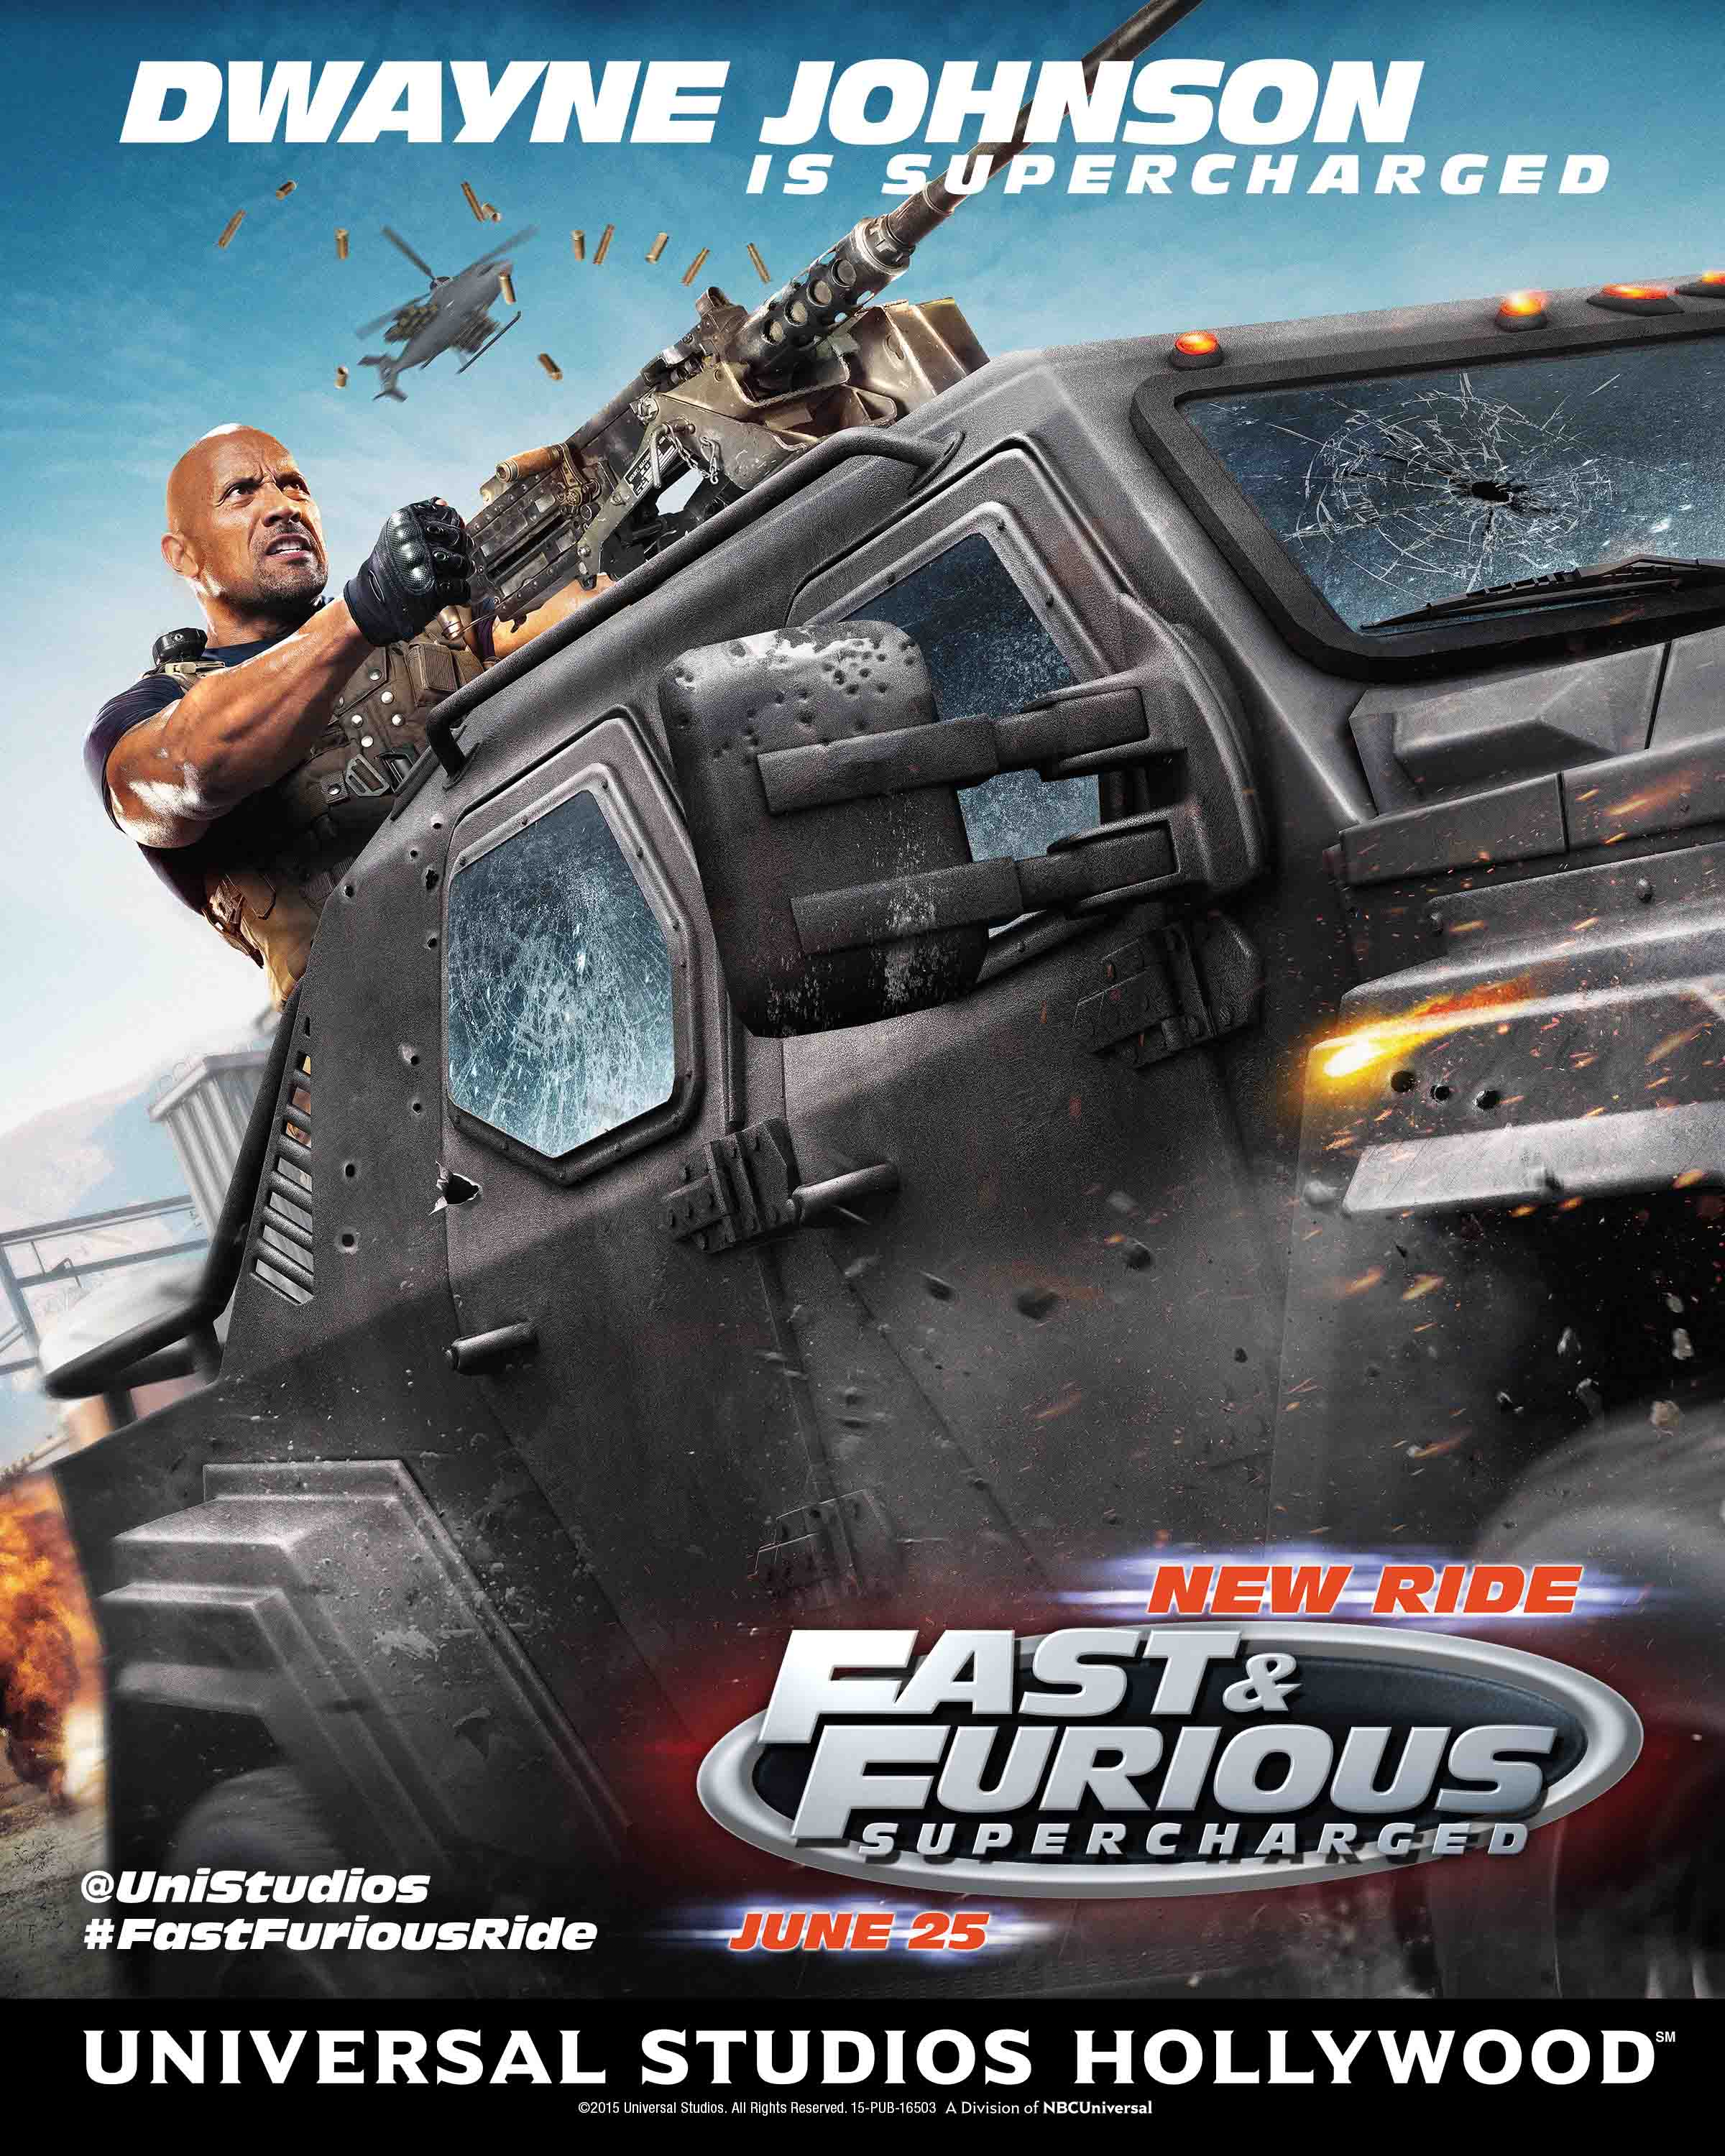 Fast Furious-Supercharged Dwayne Johnson image